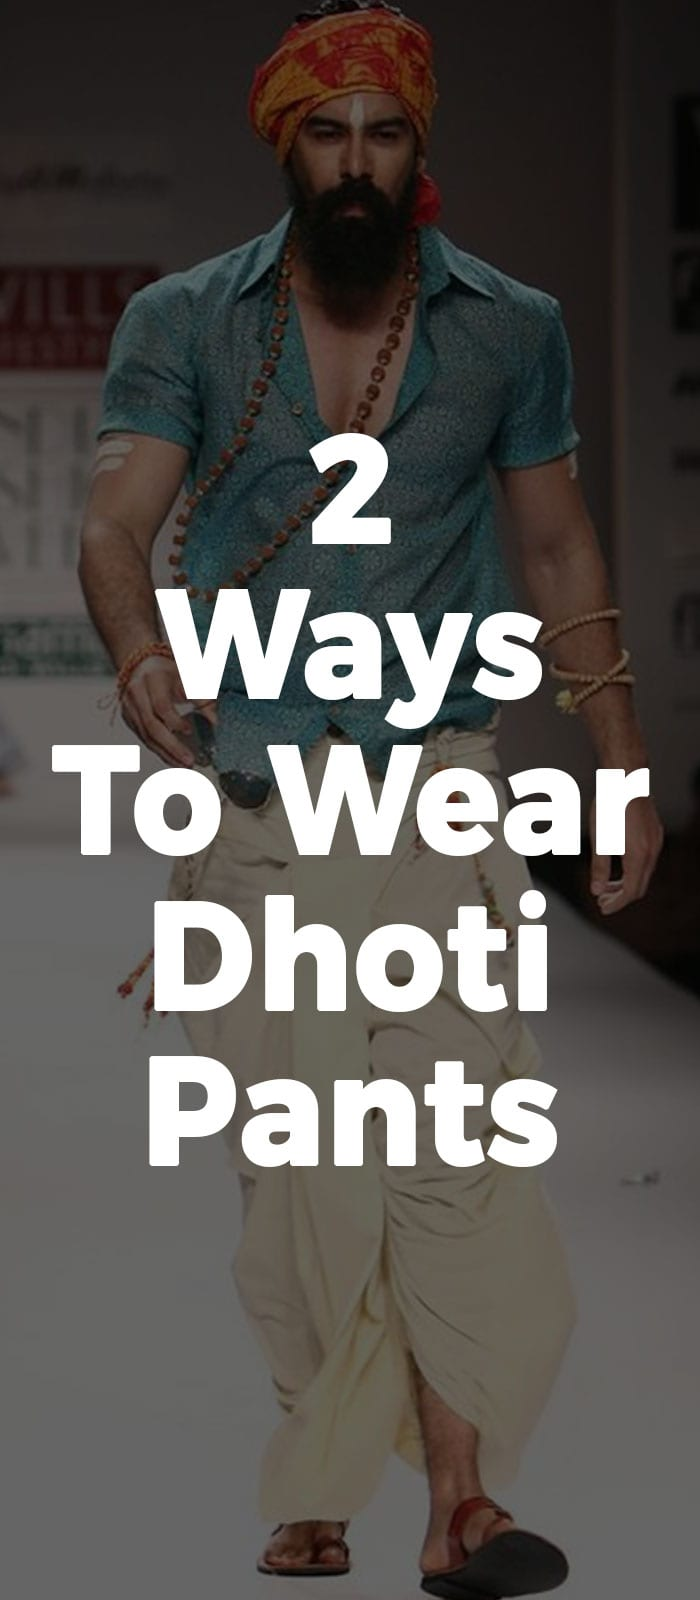 2 Ways To Wear Dhoti Pants